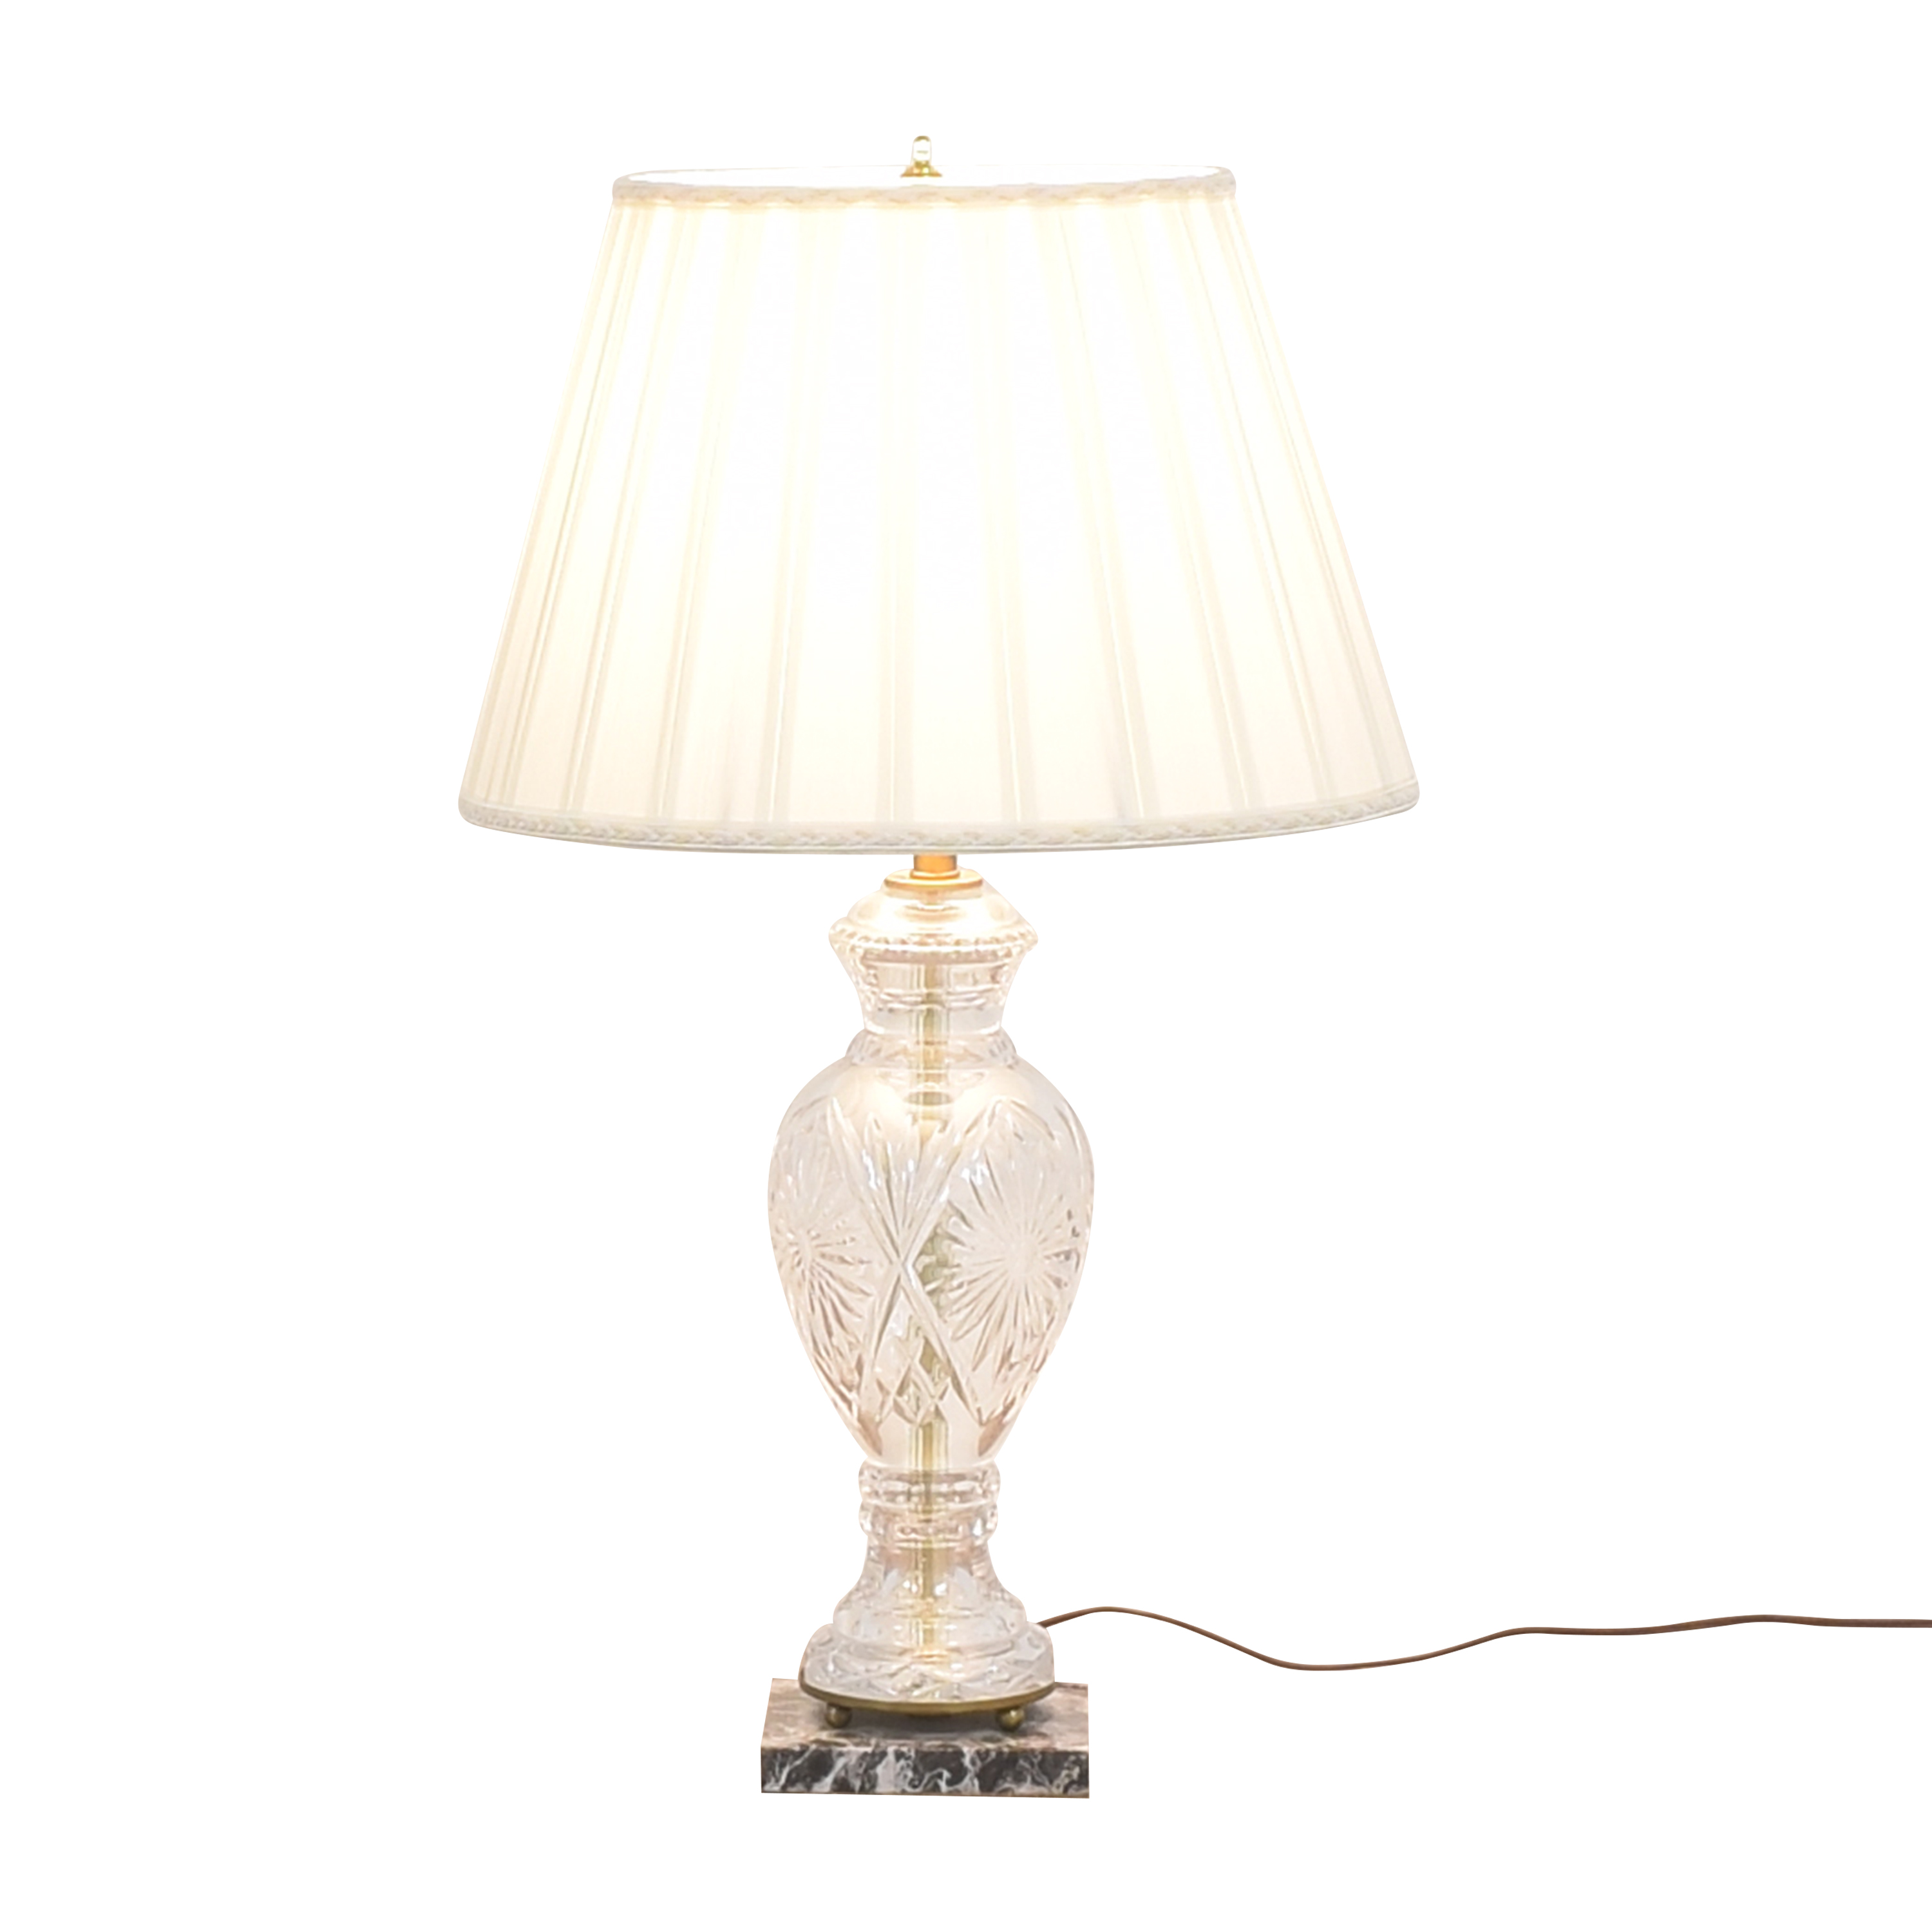 Urn Table Lamp nyc